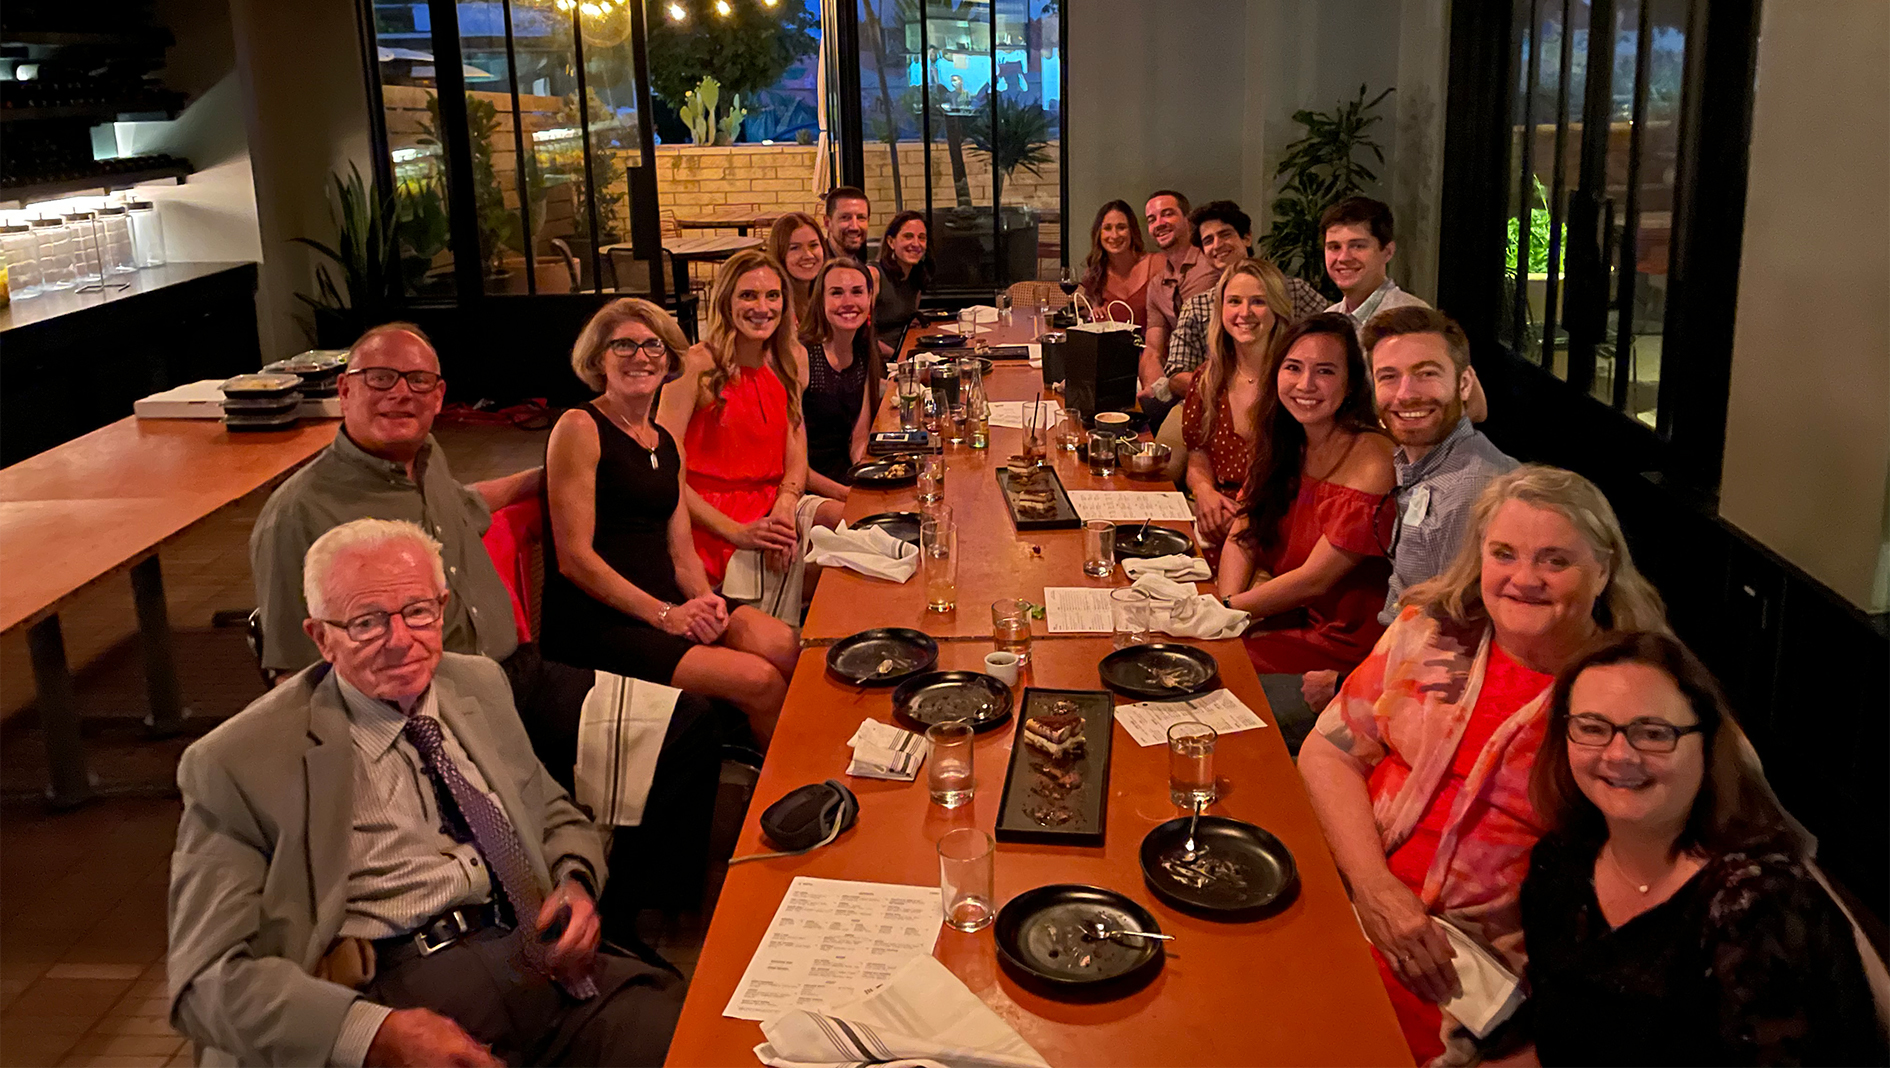 Members of the Transitional Residency at a dinner together